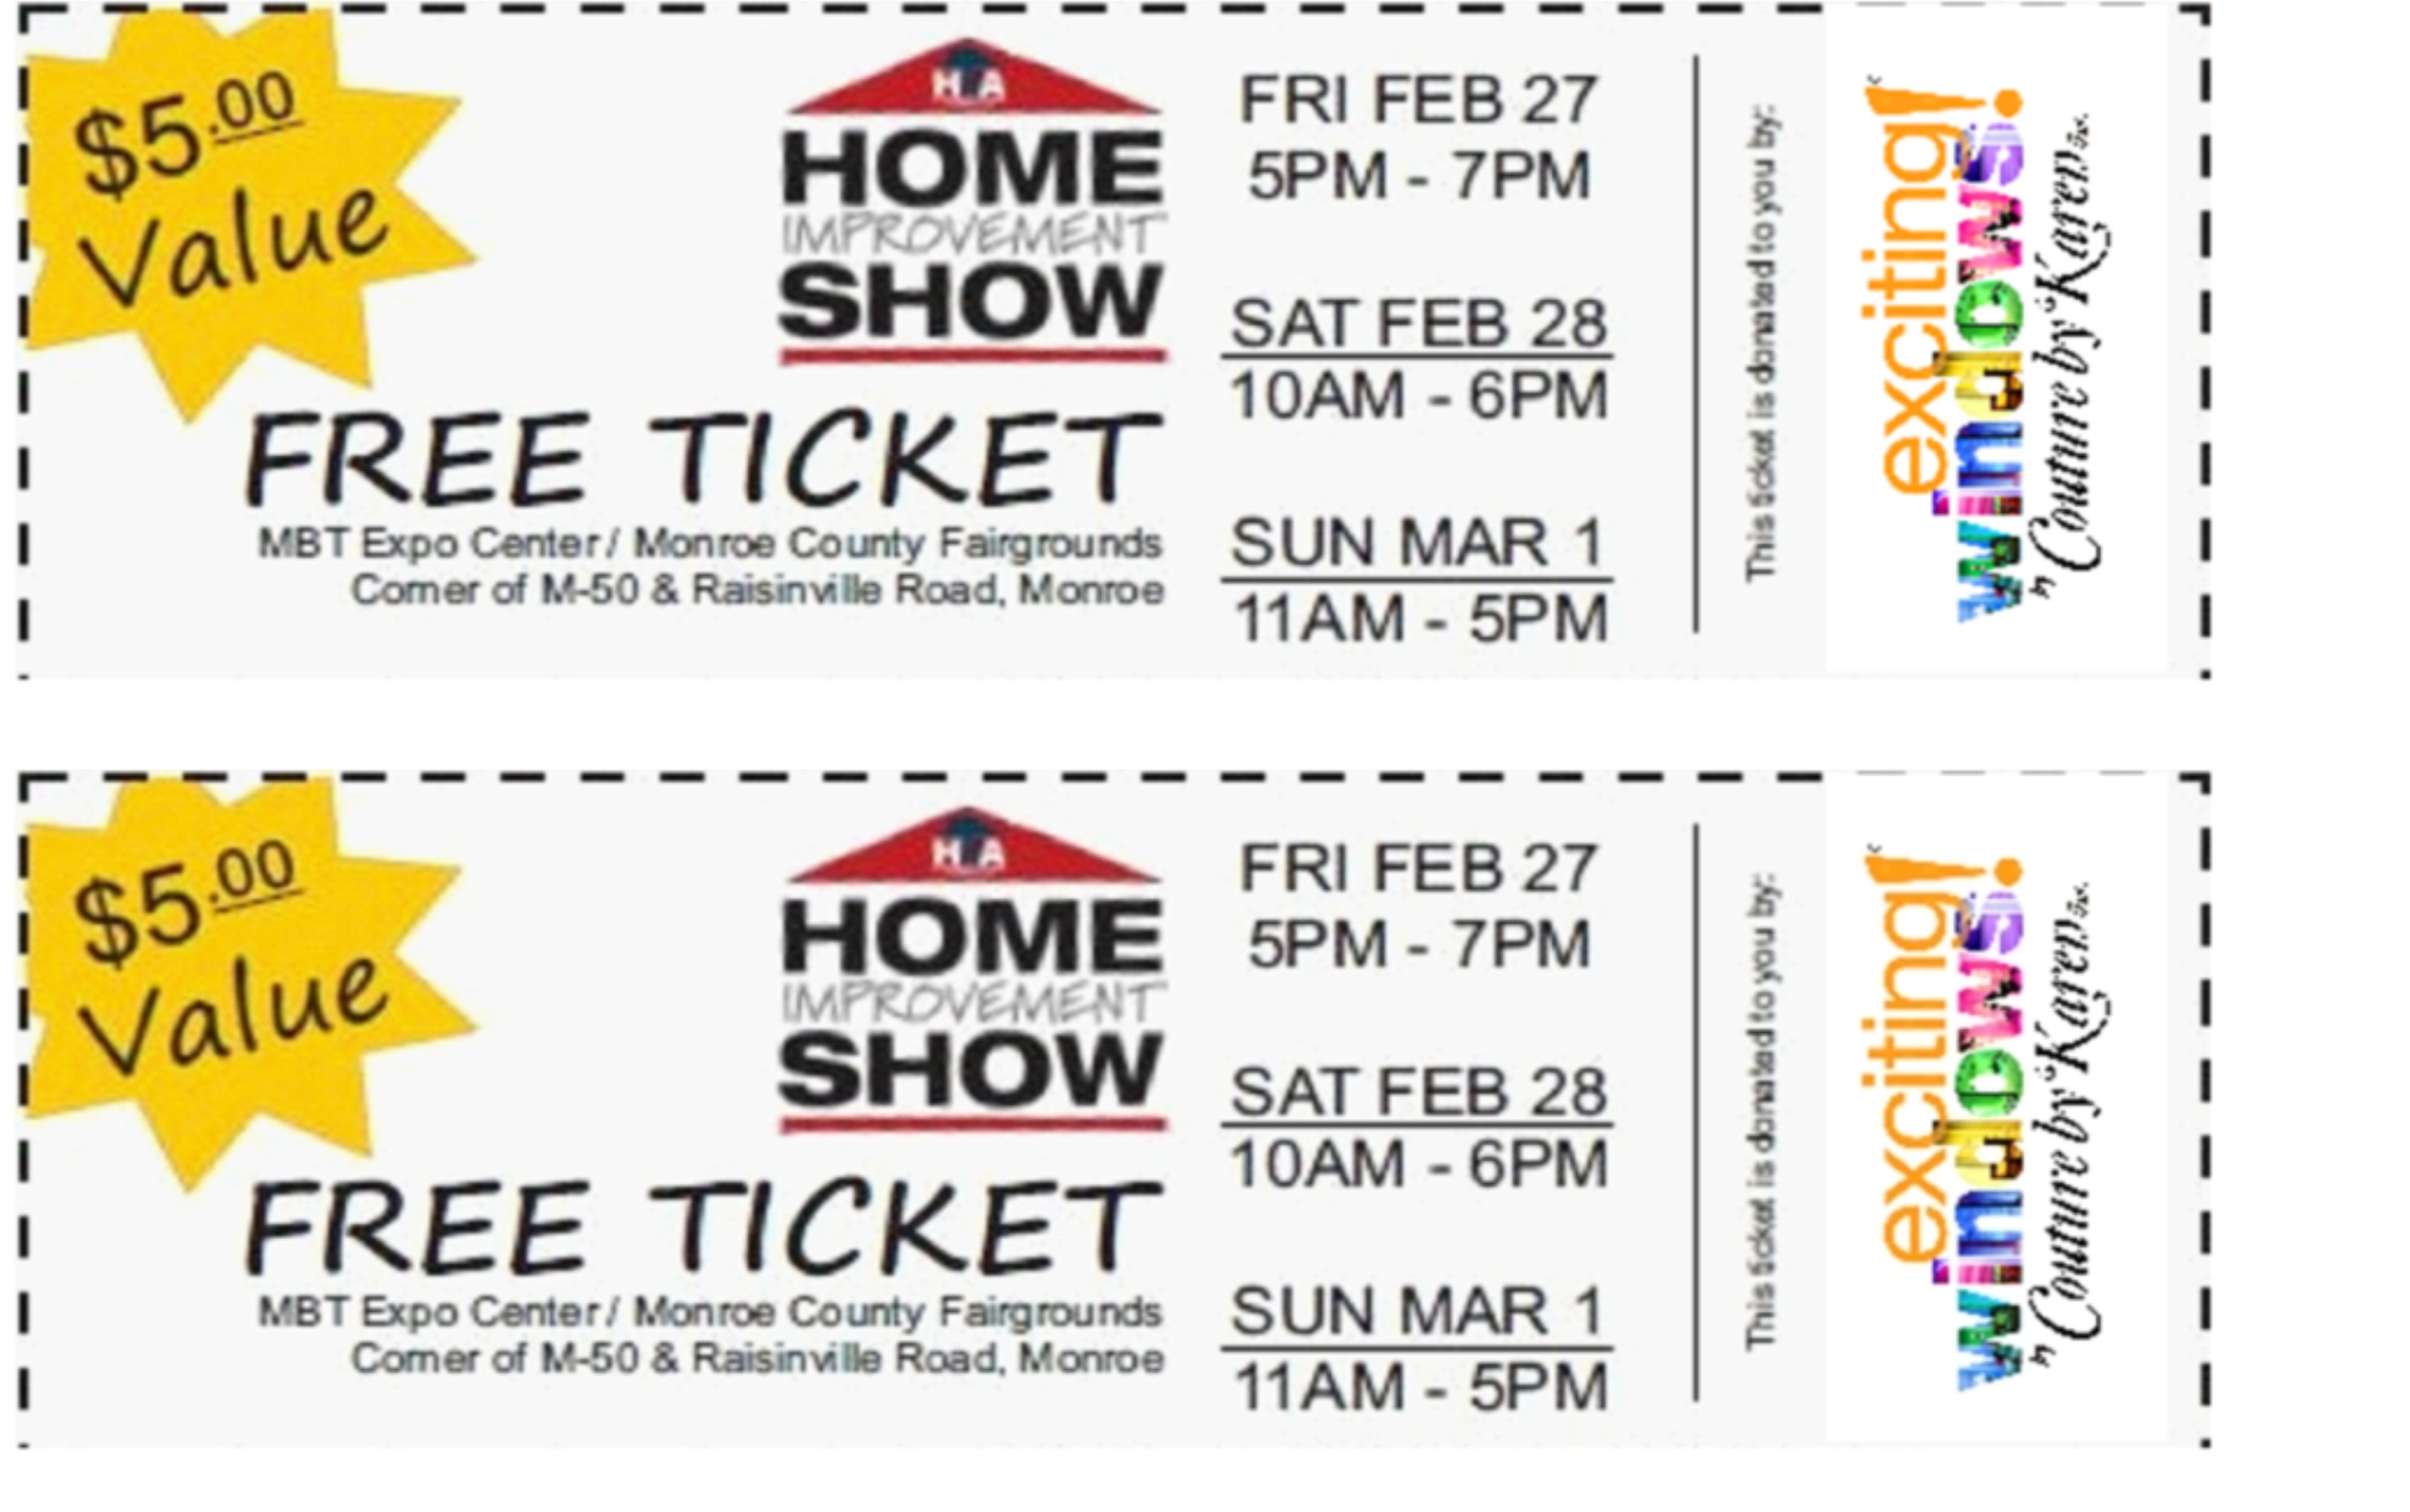 2015 HBA of Monroe Home Improvement Show - Complimentary tickets